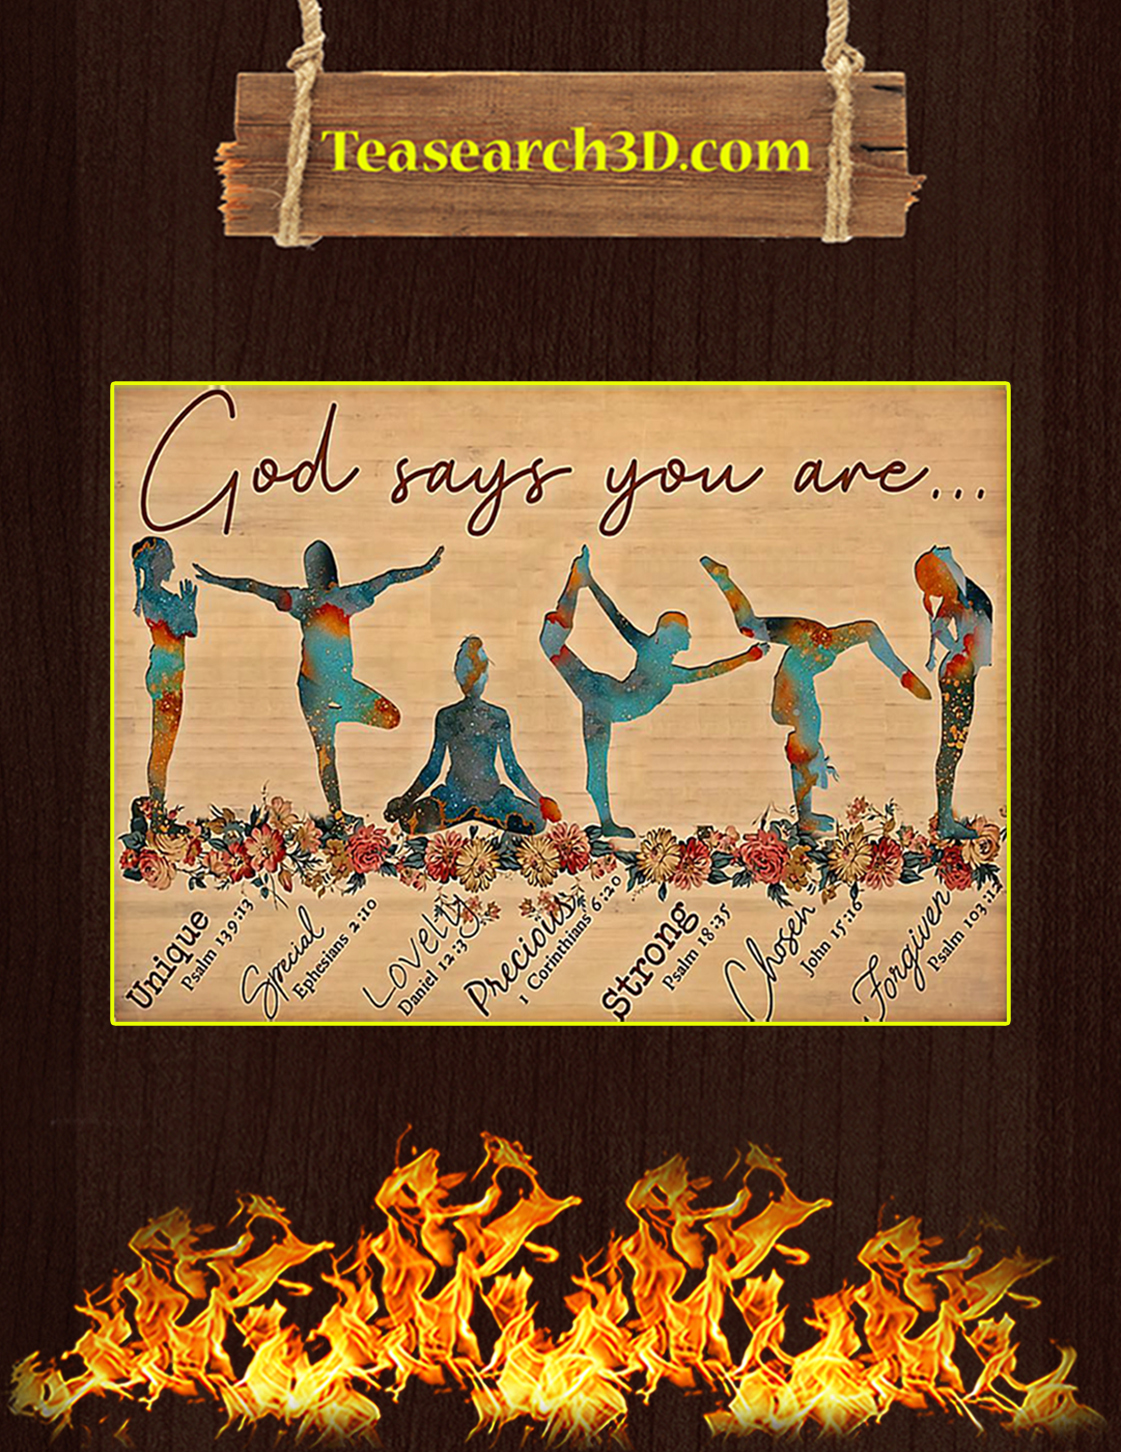 Yoga god says you are poster A3